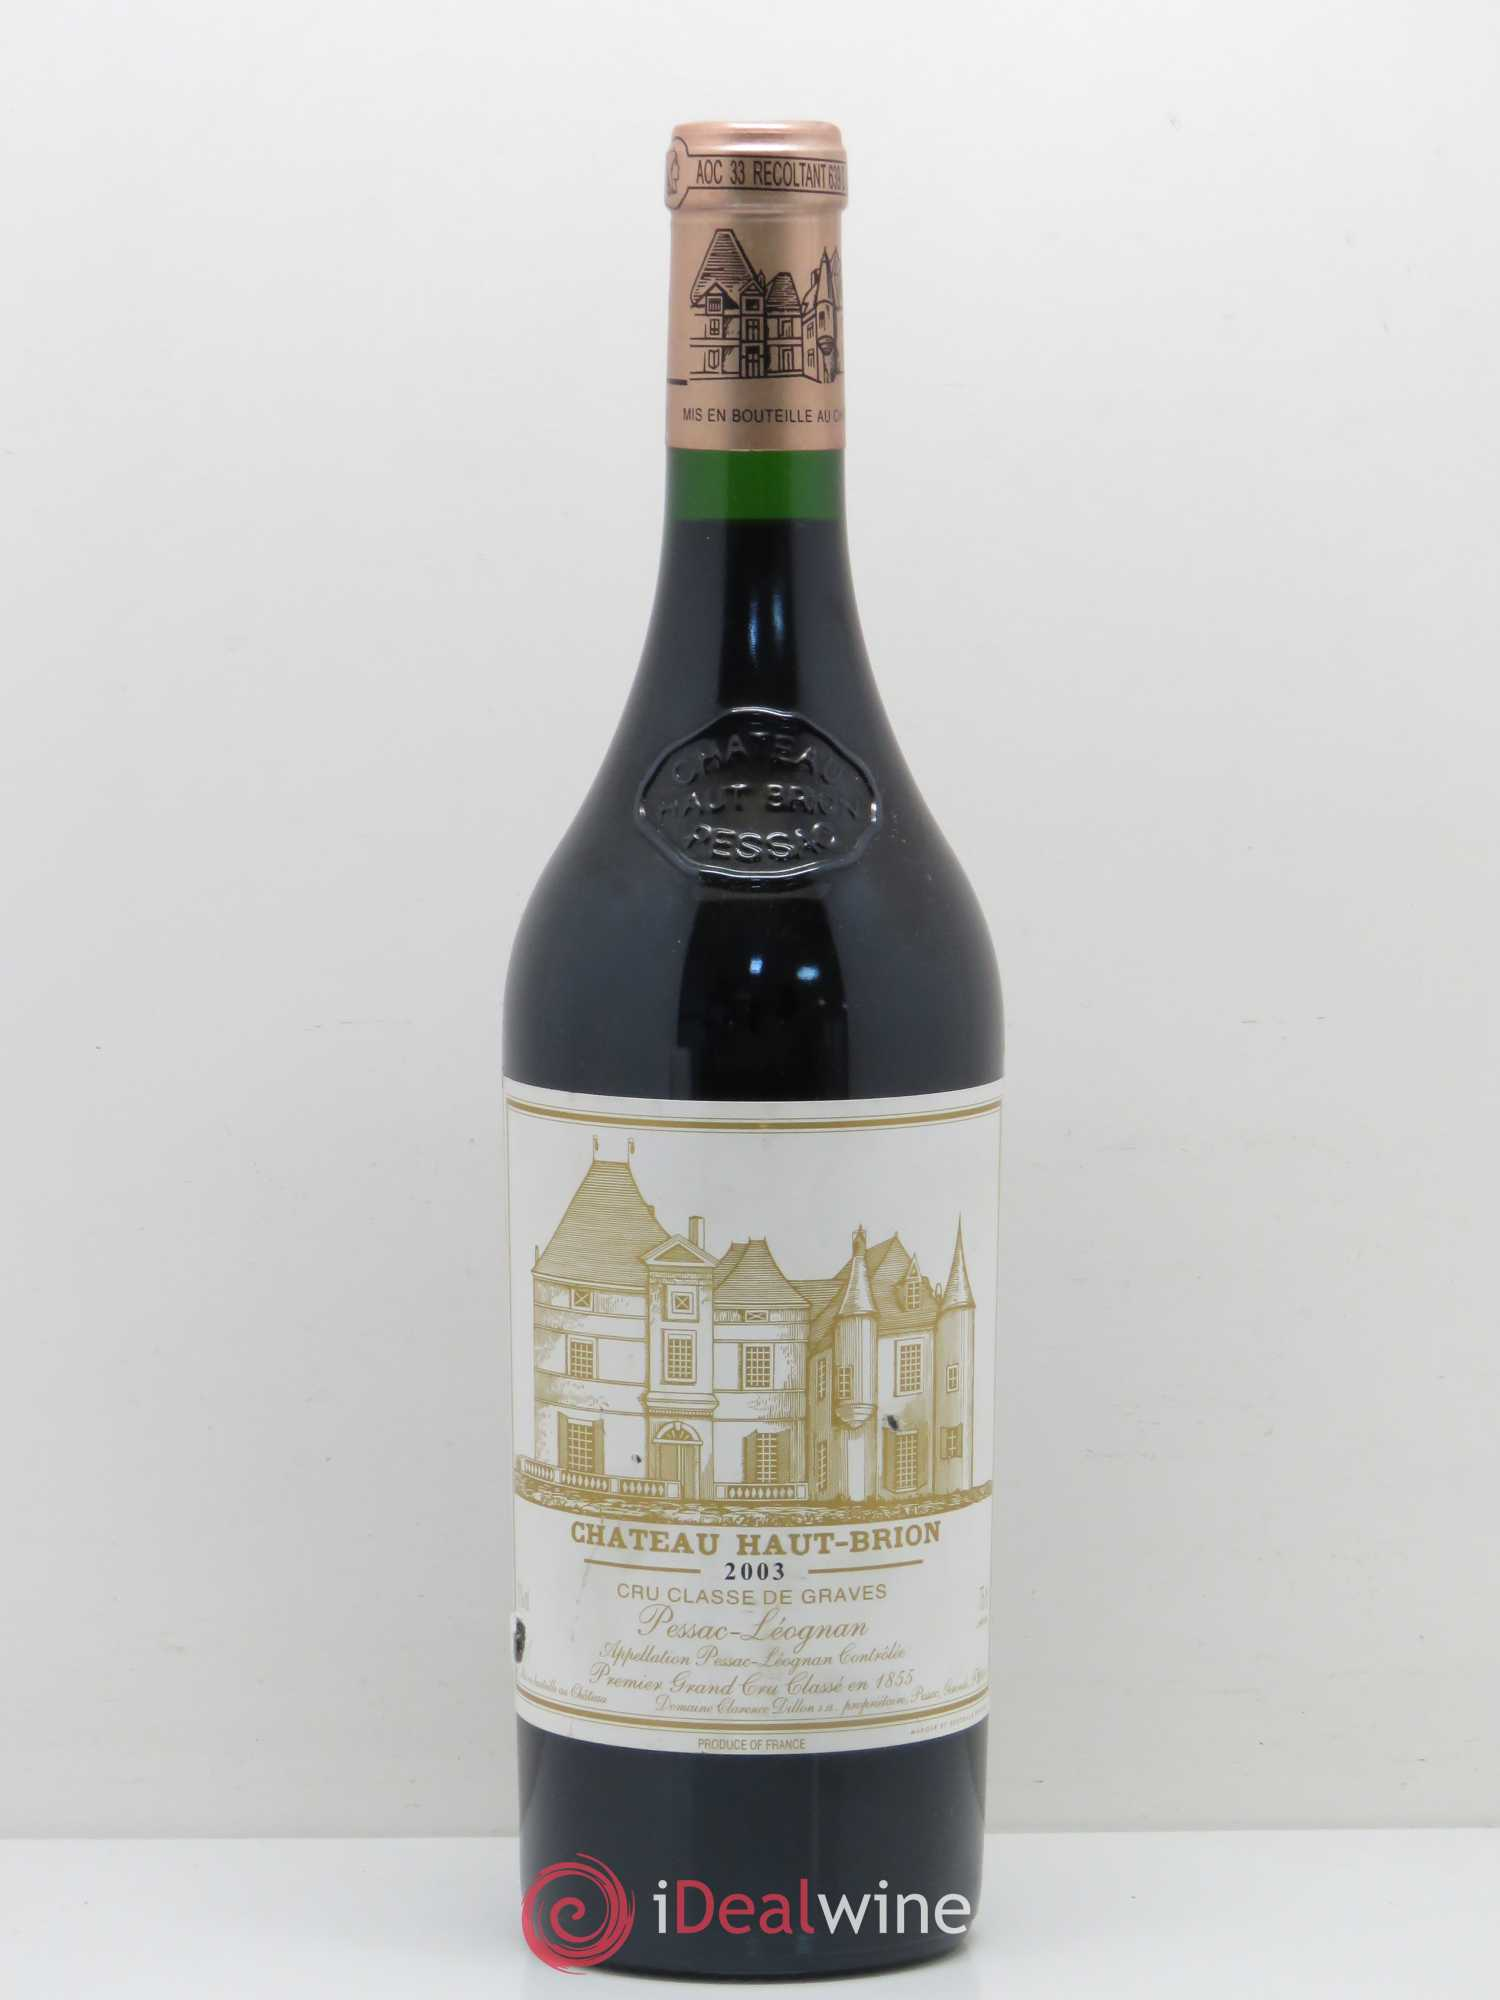 Château Haut Brion 1er Grand Cru Classé  2003 - Lot of 1 Bottle